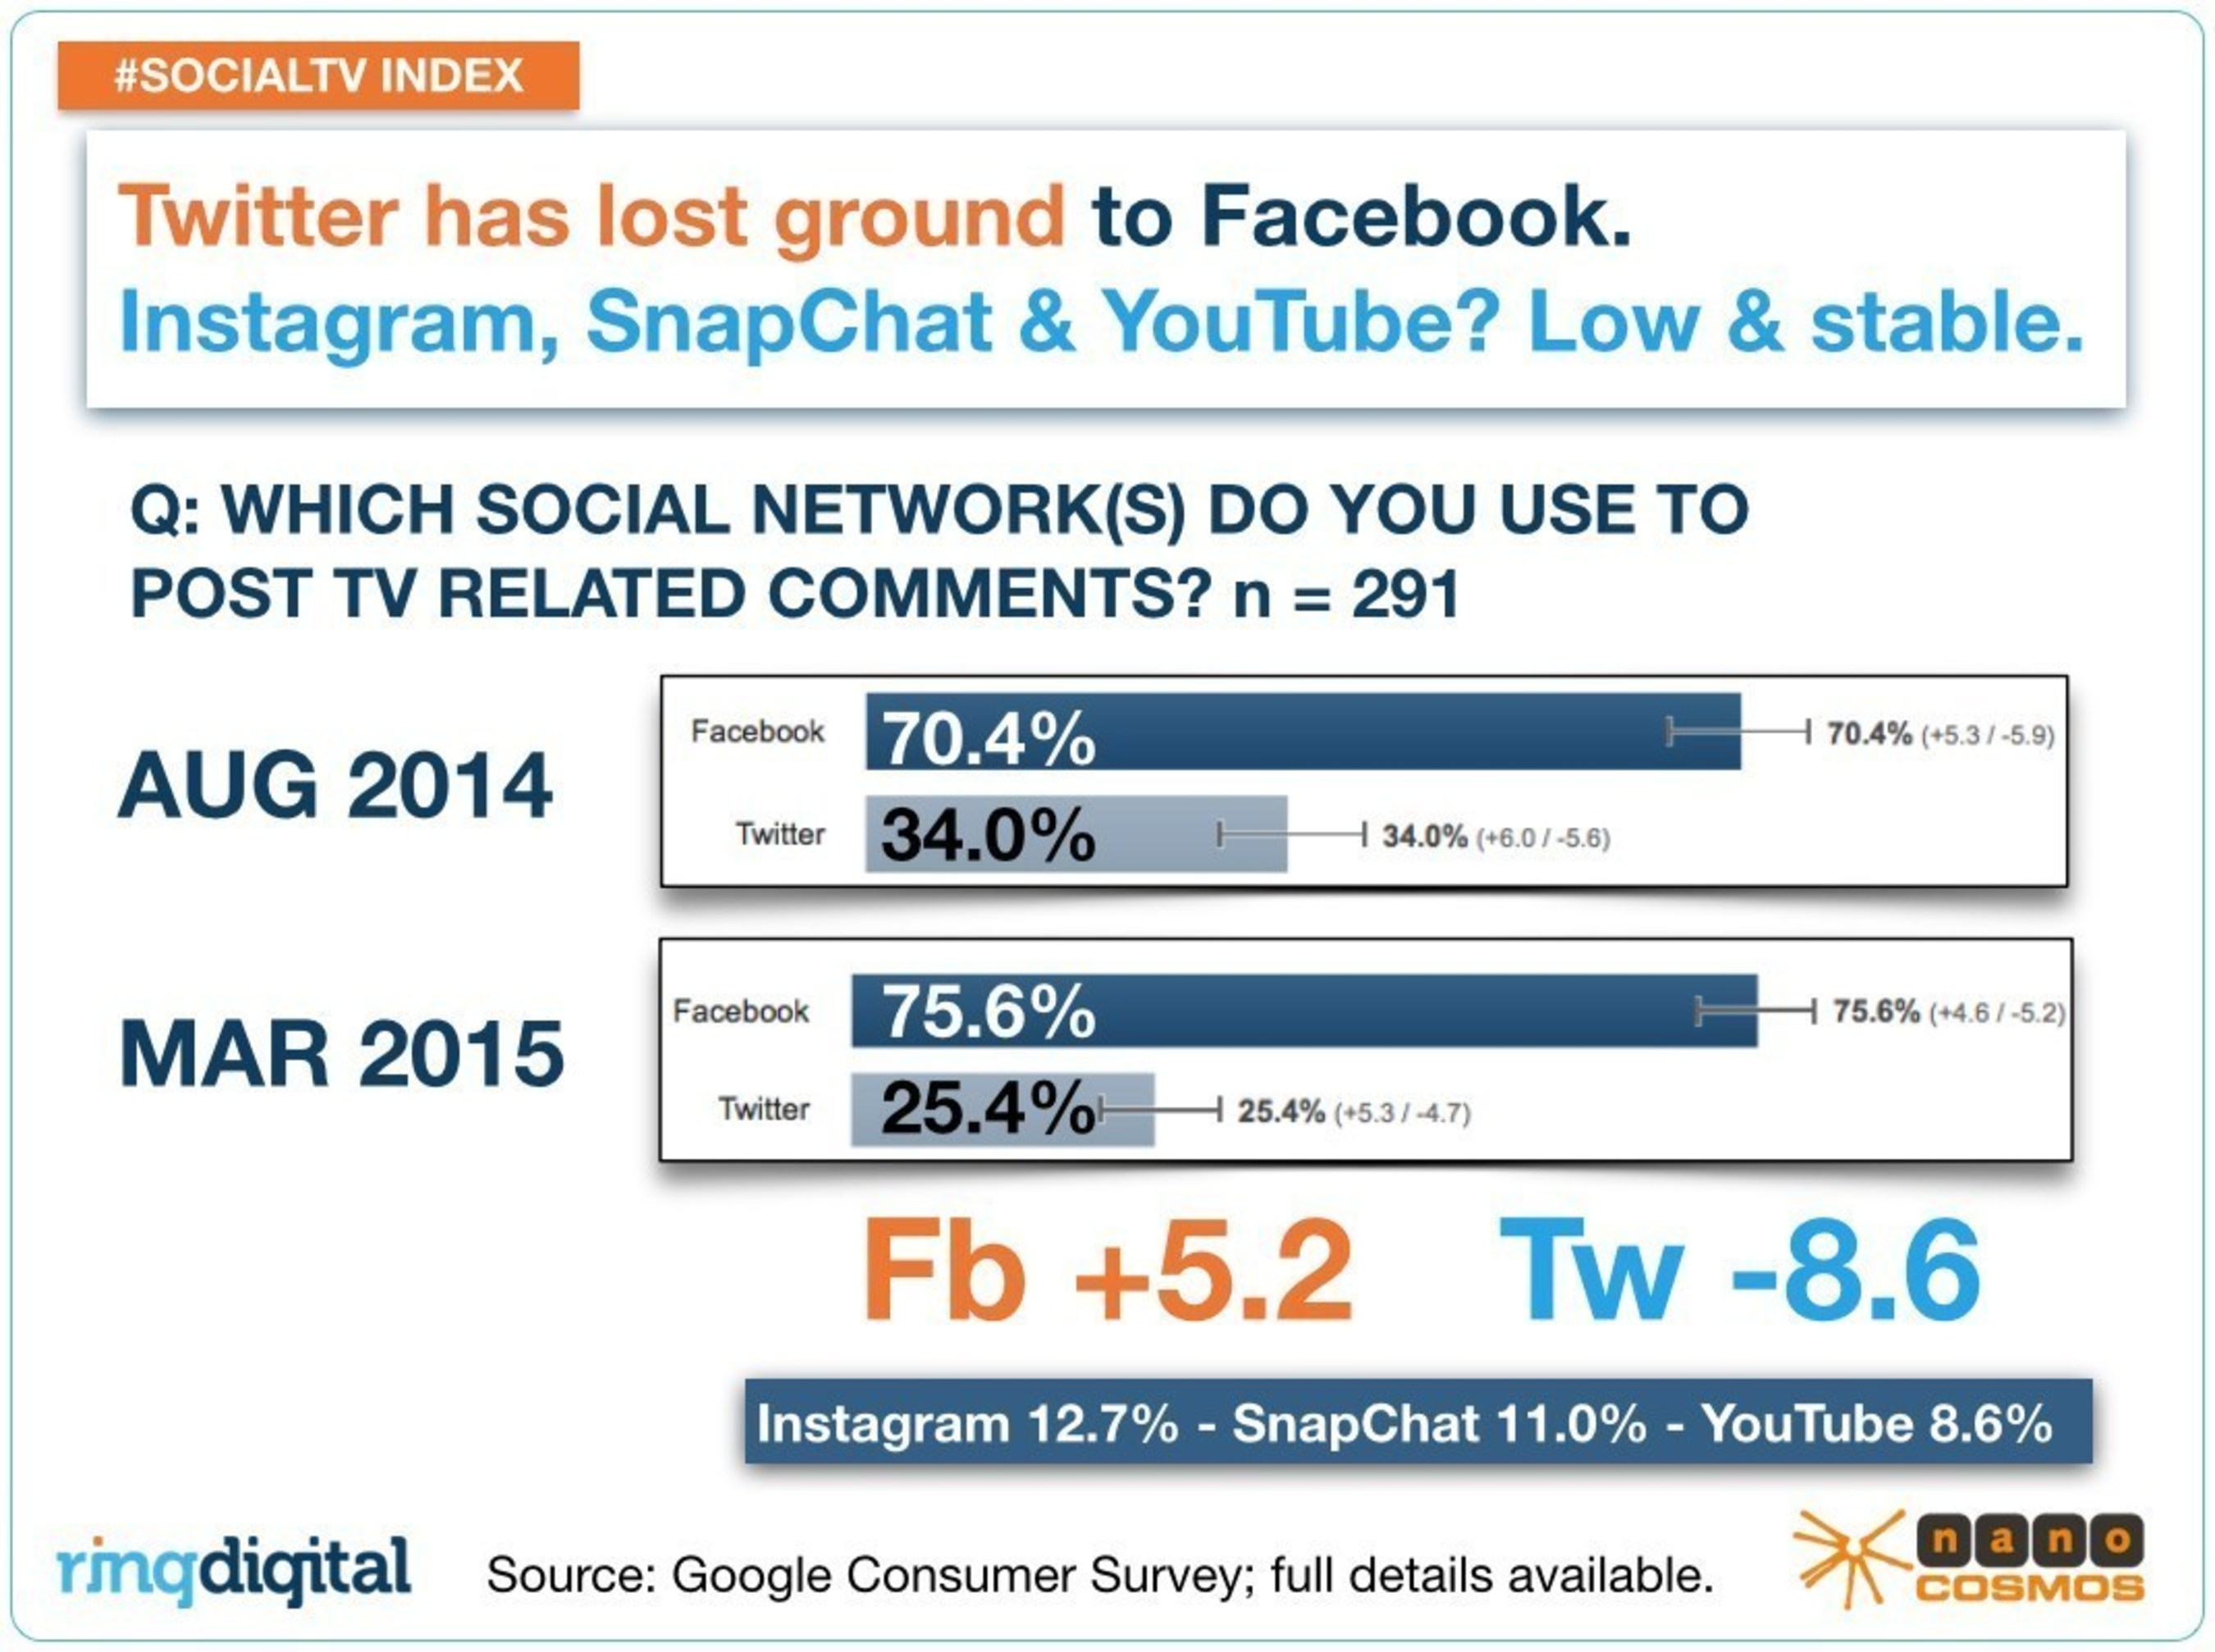 In SocialTV, Twitter may be losing ground to Facebook.